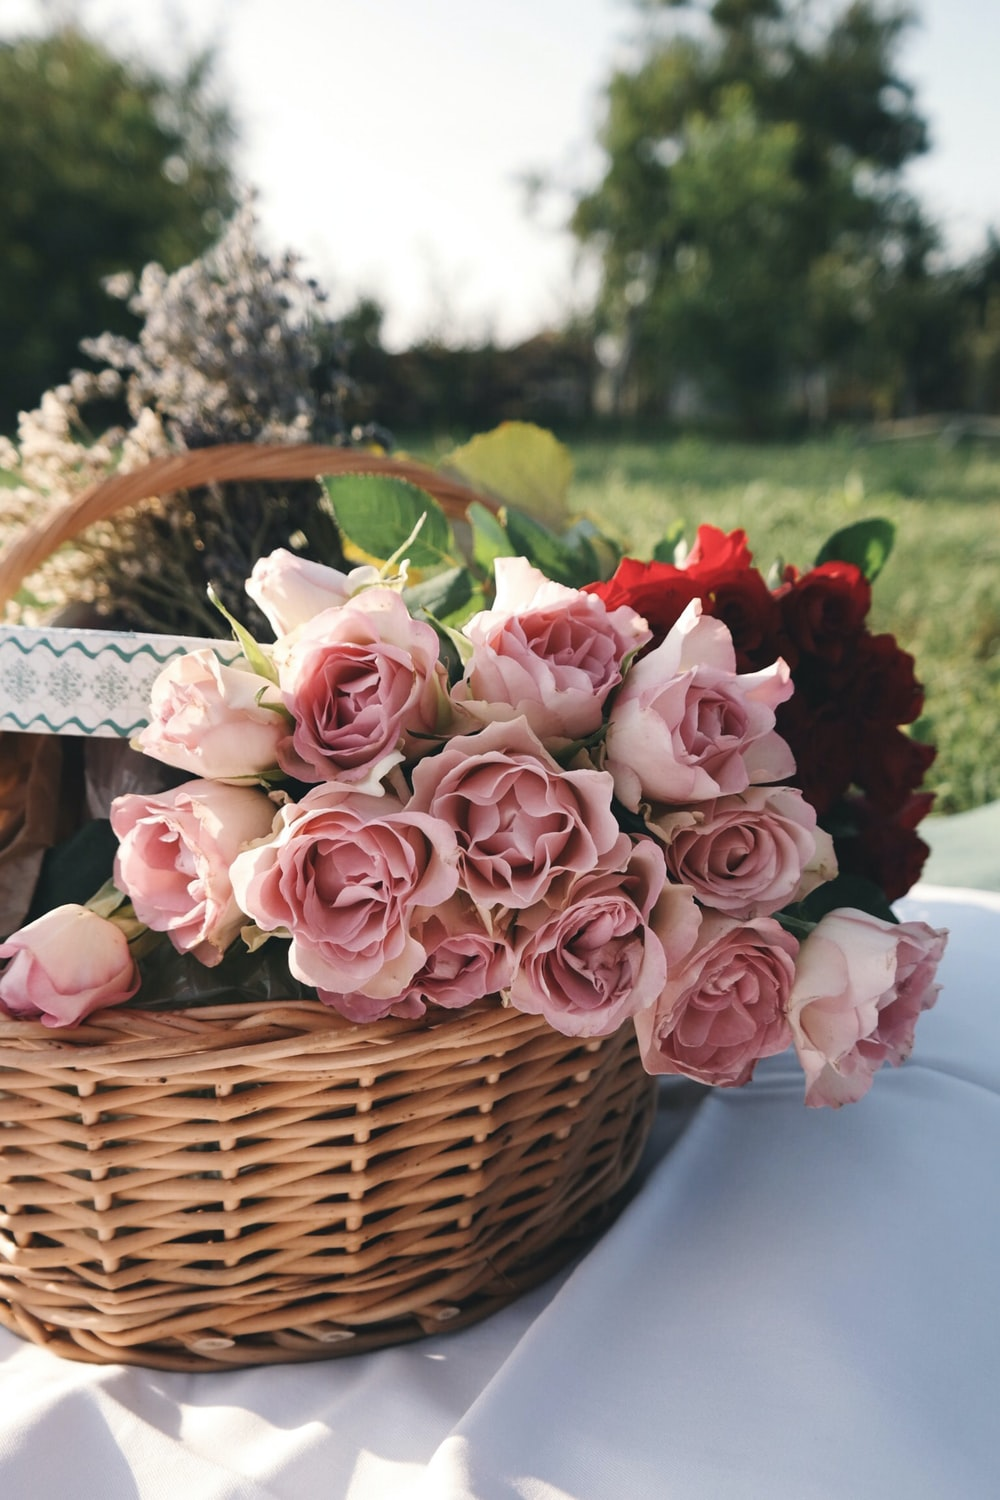 Flower pictures hd download free images on unsplash pink rose on wicker basket mightylinksfo